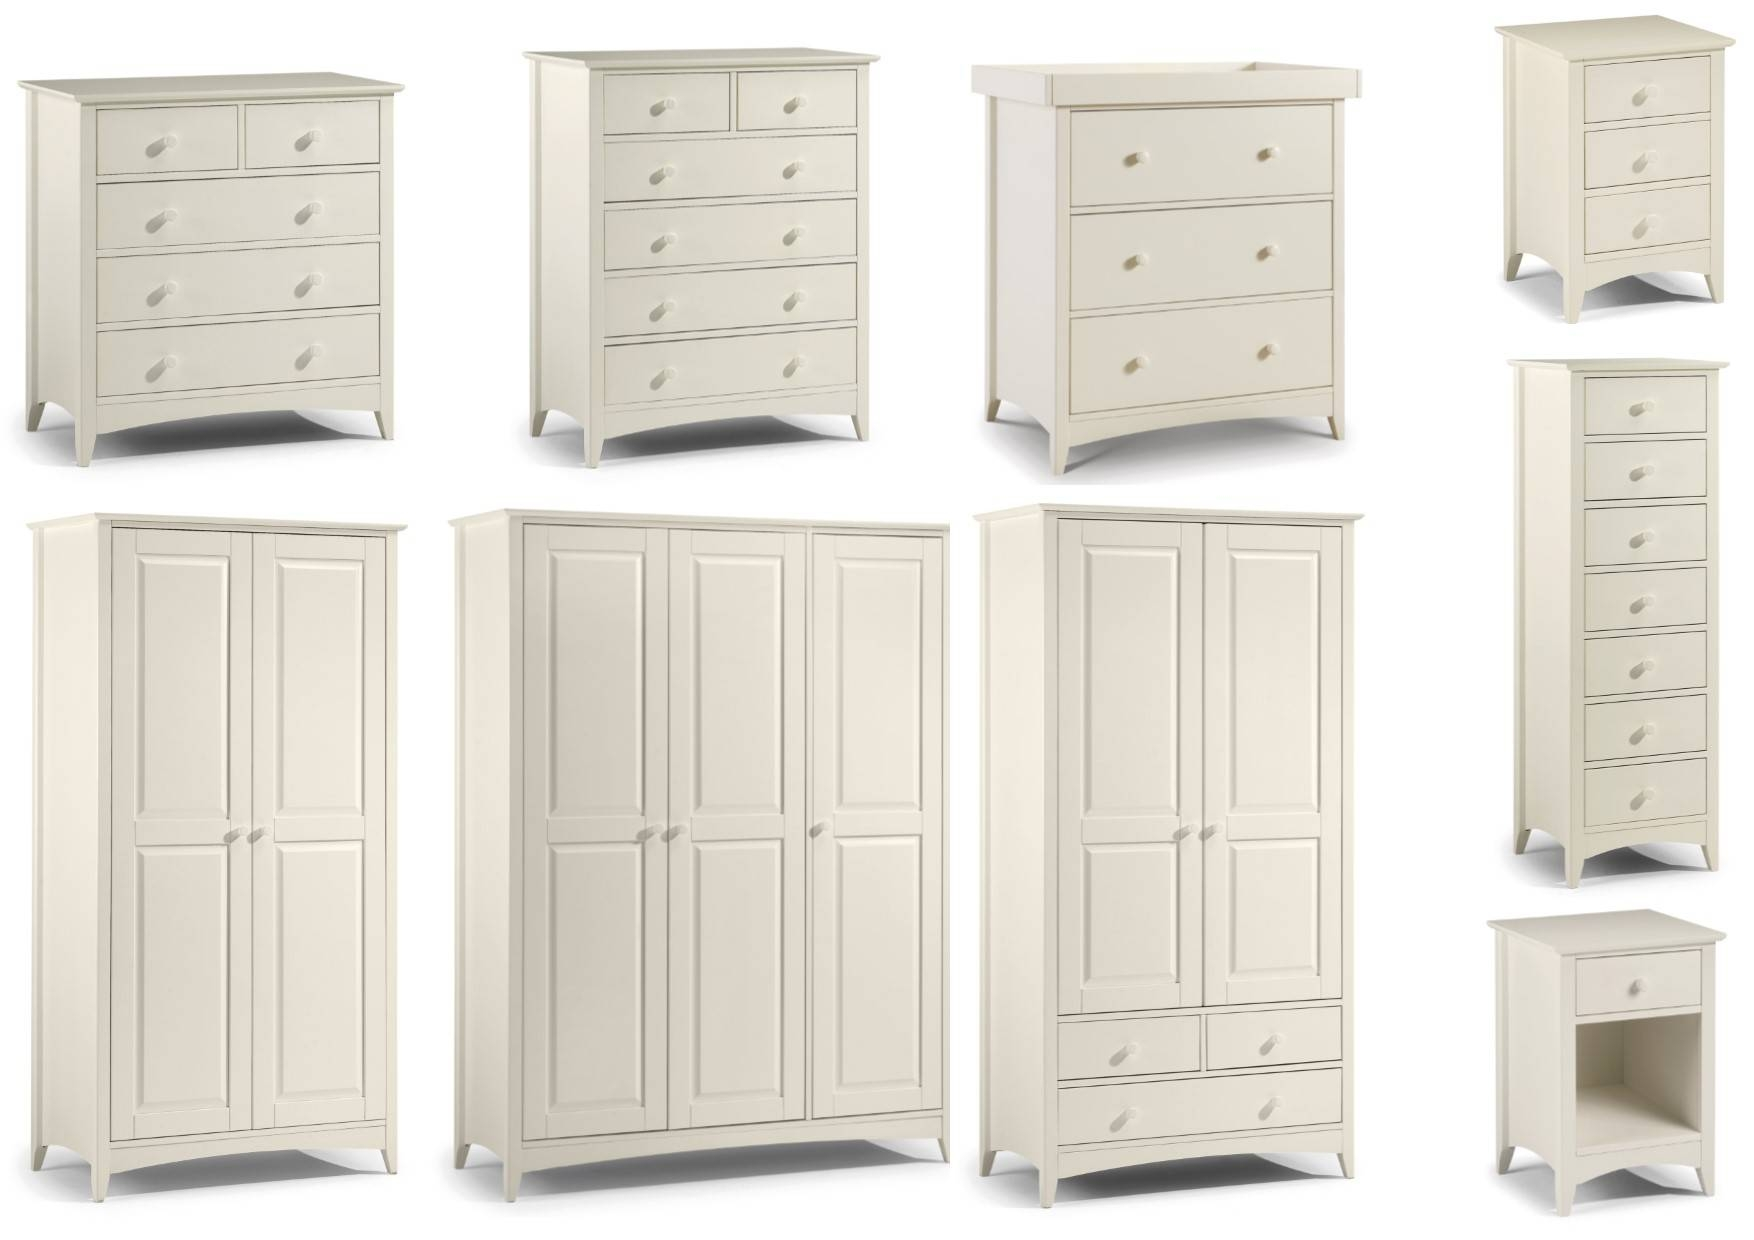 Julian Bowen Cameo Stone White Bedroom Range - Bedside Drawers pertaining to Julian Bowen Cameo Wardrobes (Image 6 of 15)